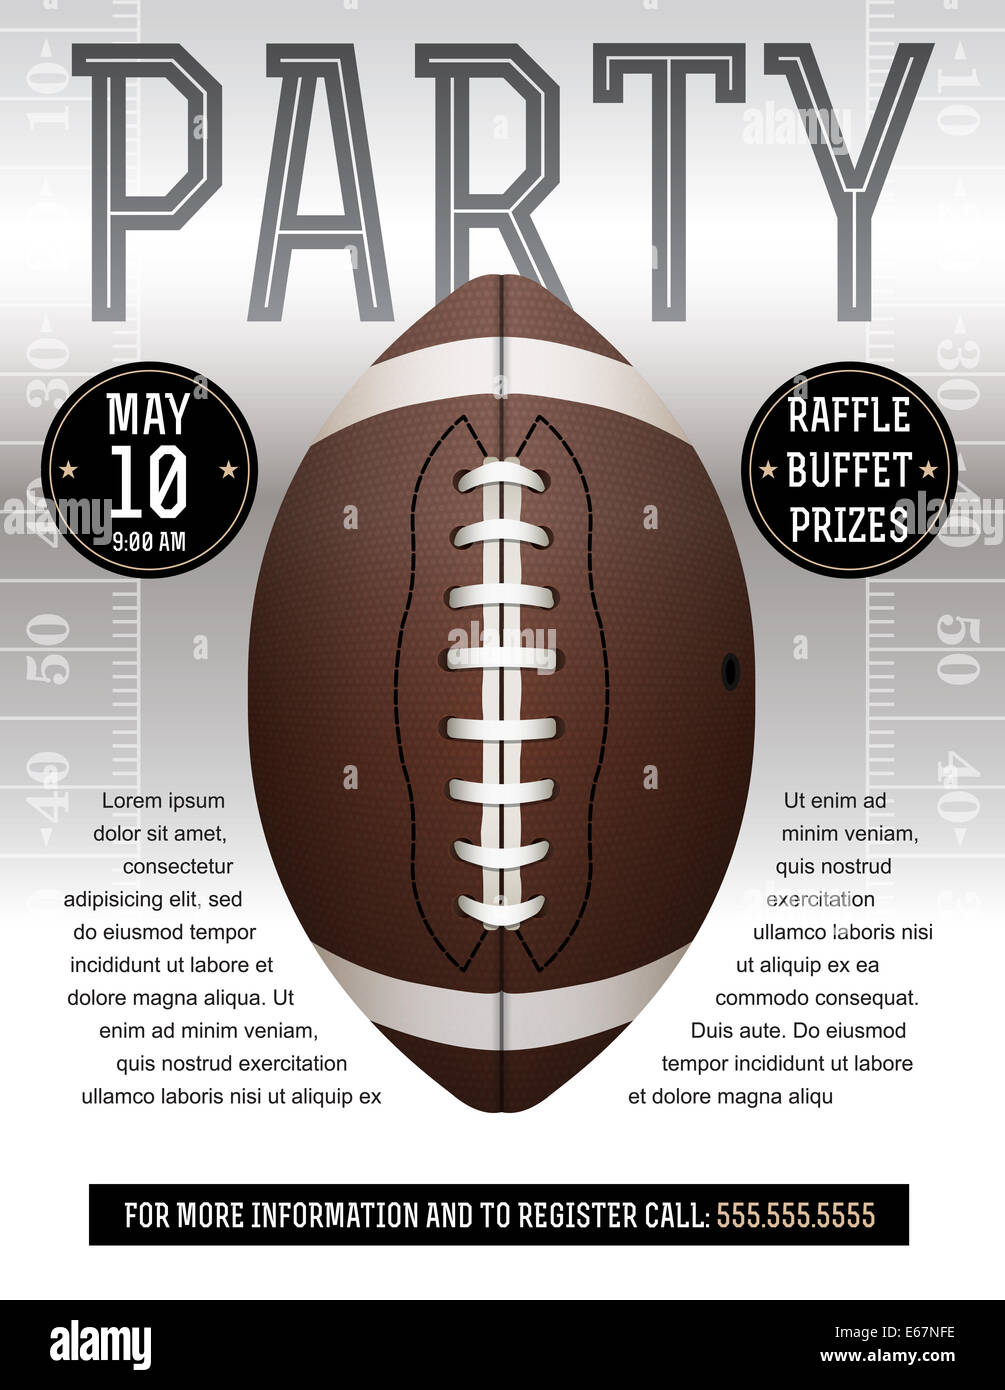 an american football flyer design perfect for tailgate parties stock